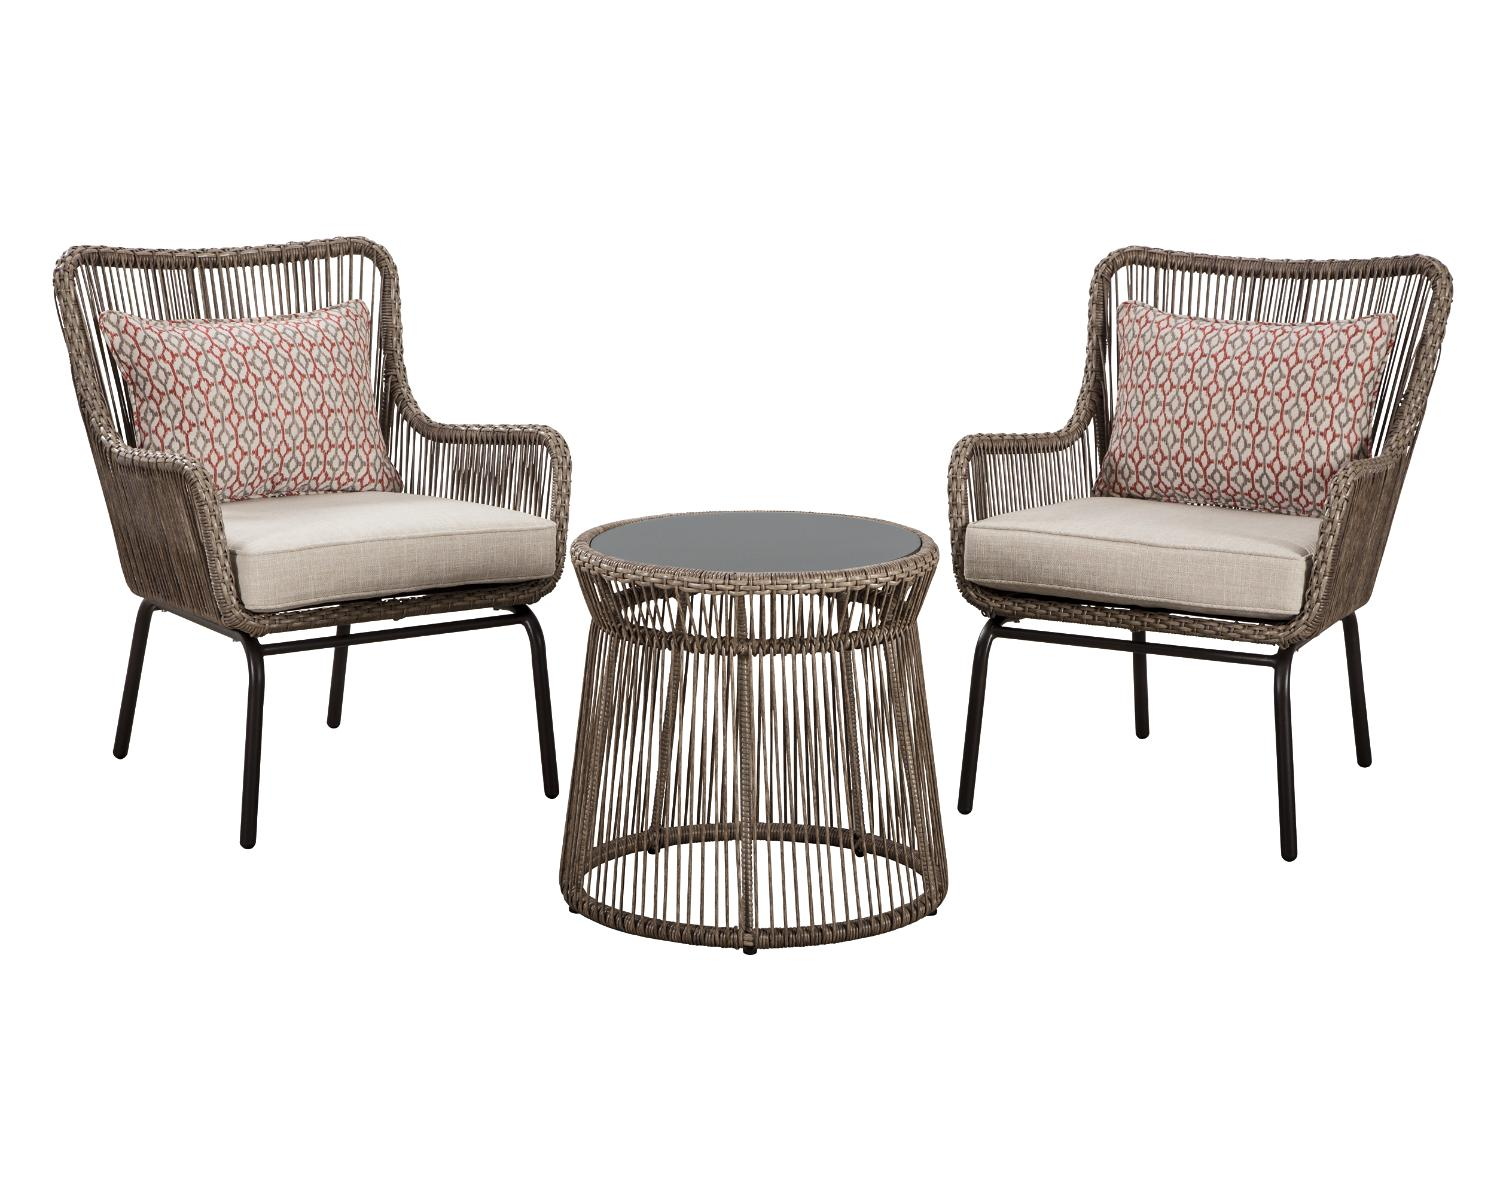 signature design by ashley cotton road outdoor brown table and chairs set of 3 walmart com